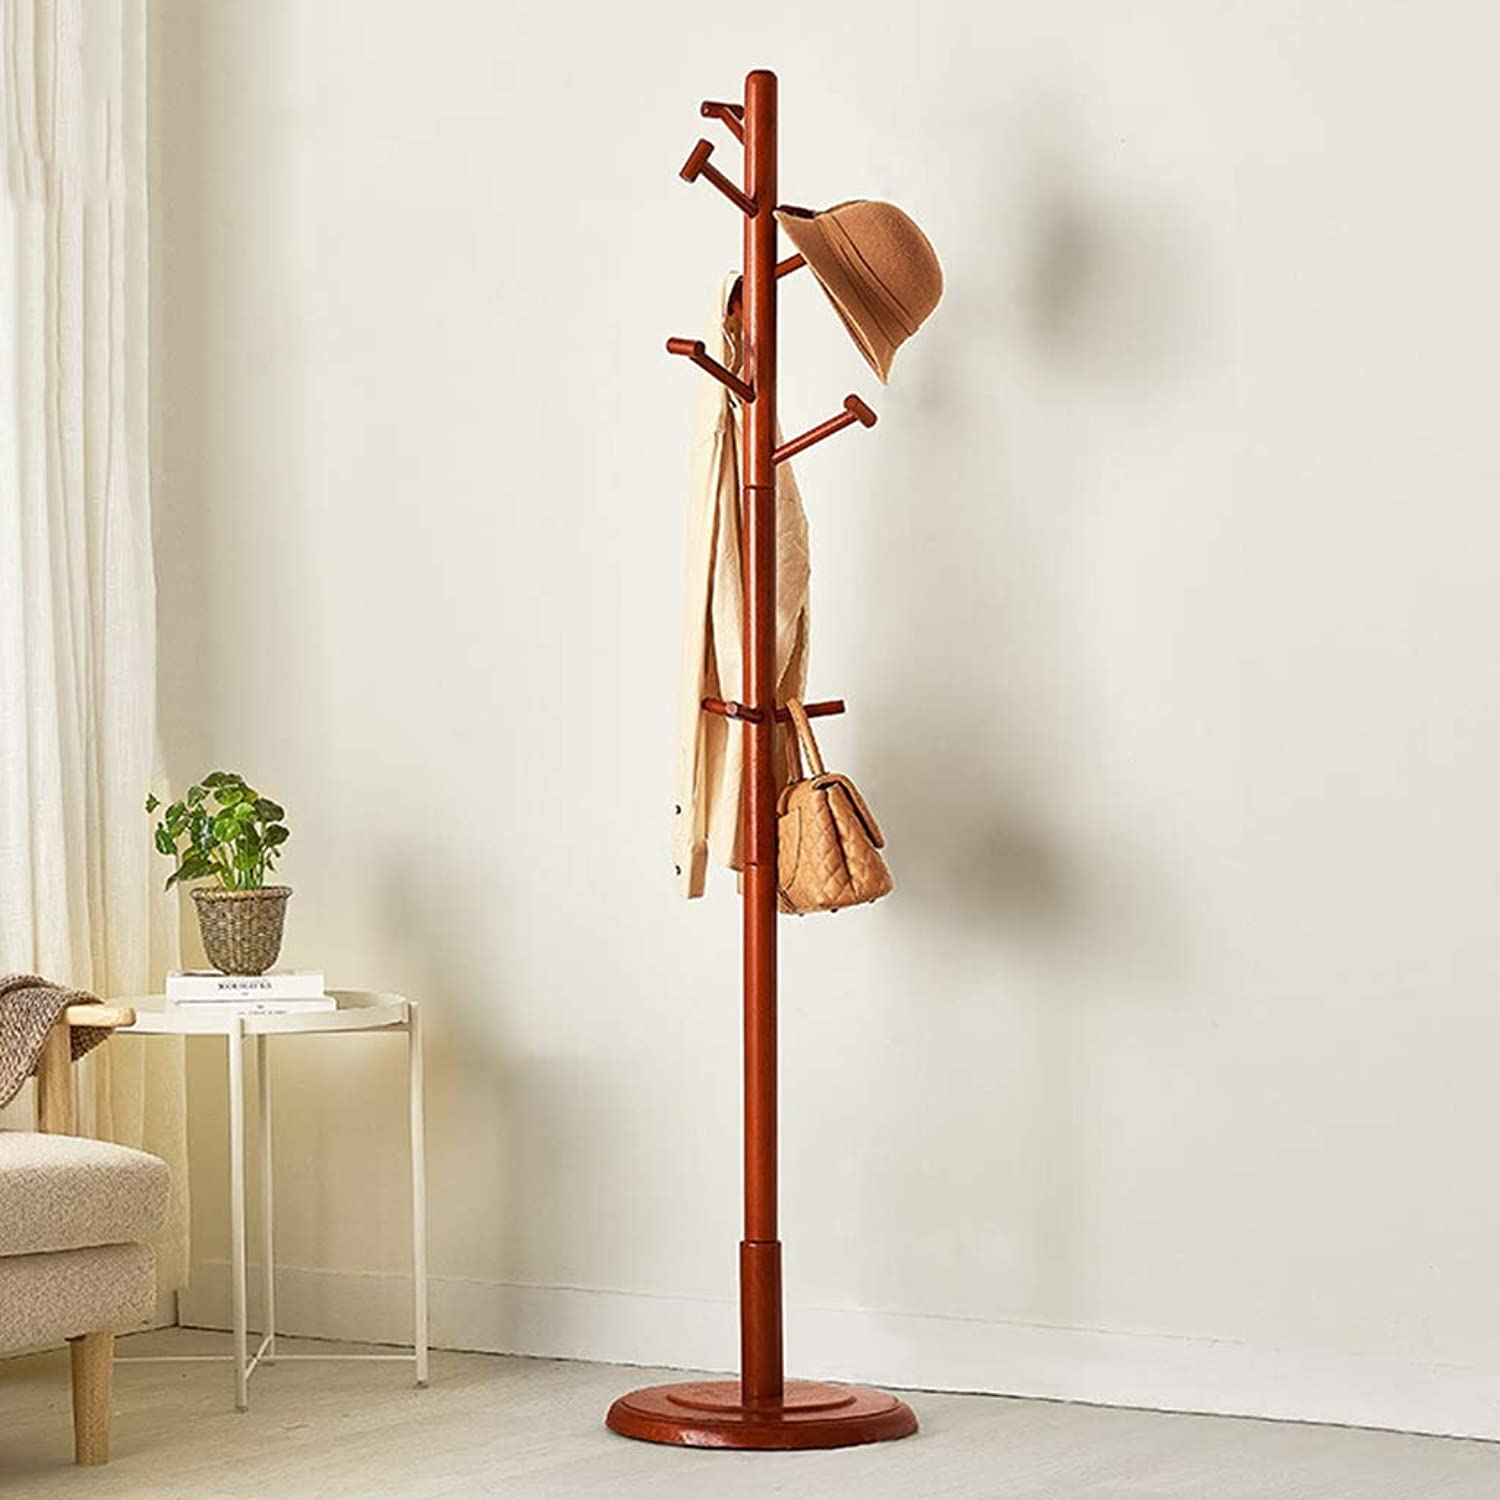 Standing Coat Racks Coat Stand Solid Wood Coat Hat Umbrella Floor Standing Rack Clothes Rack Hat Coat Rack Floor Hanger Hall Clothes Tree Floor Hanger -0223 (color   Red Wine)